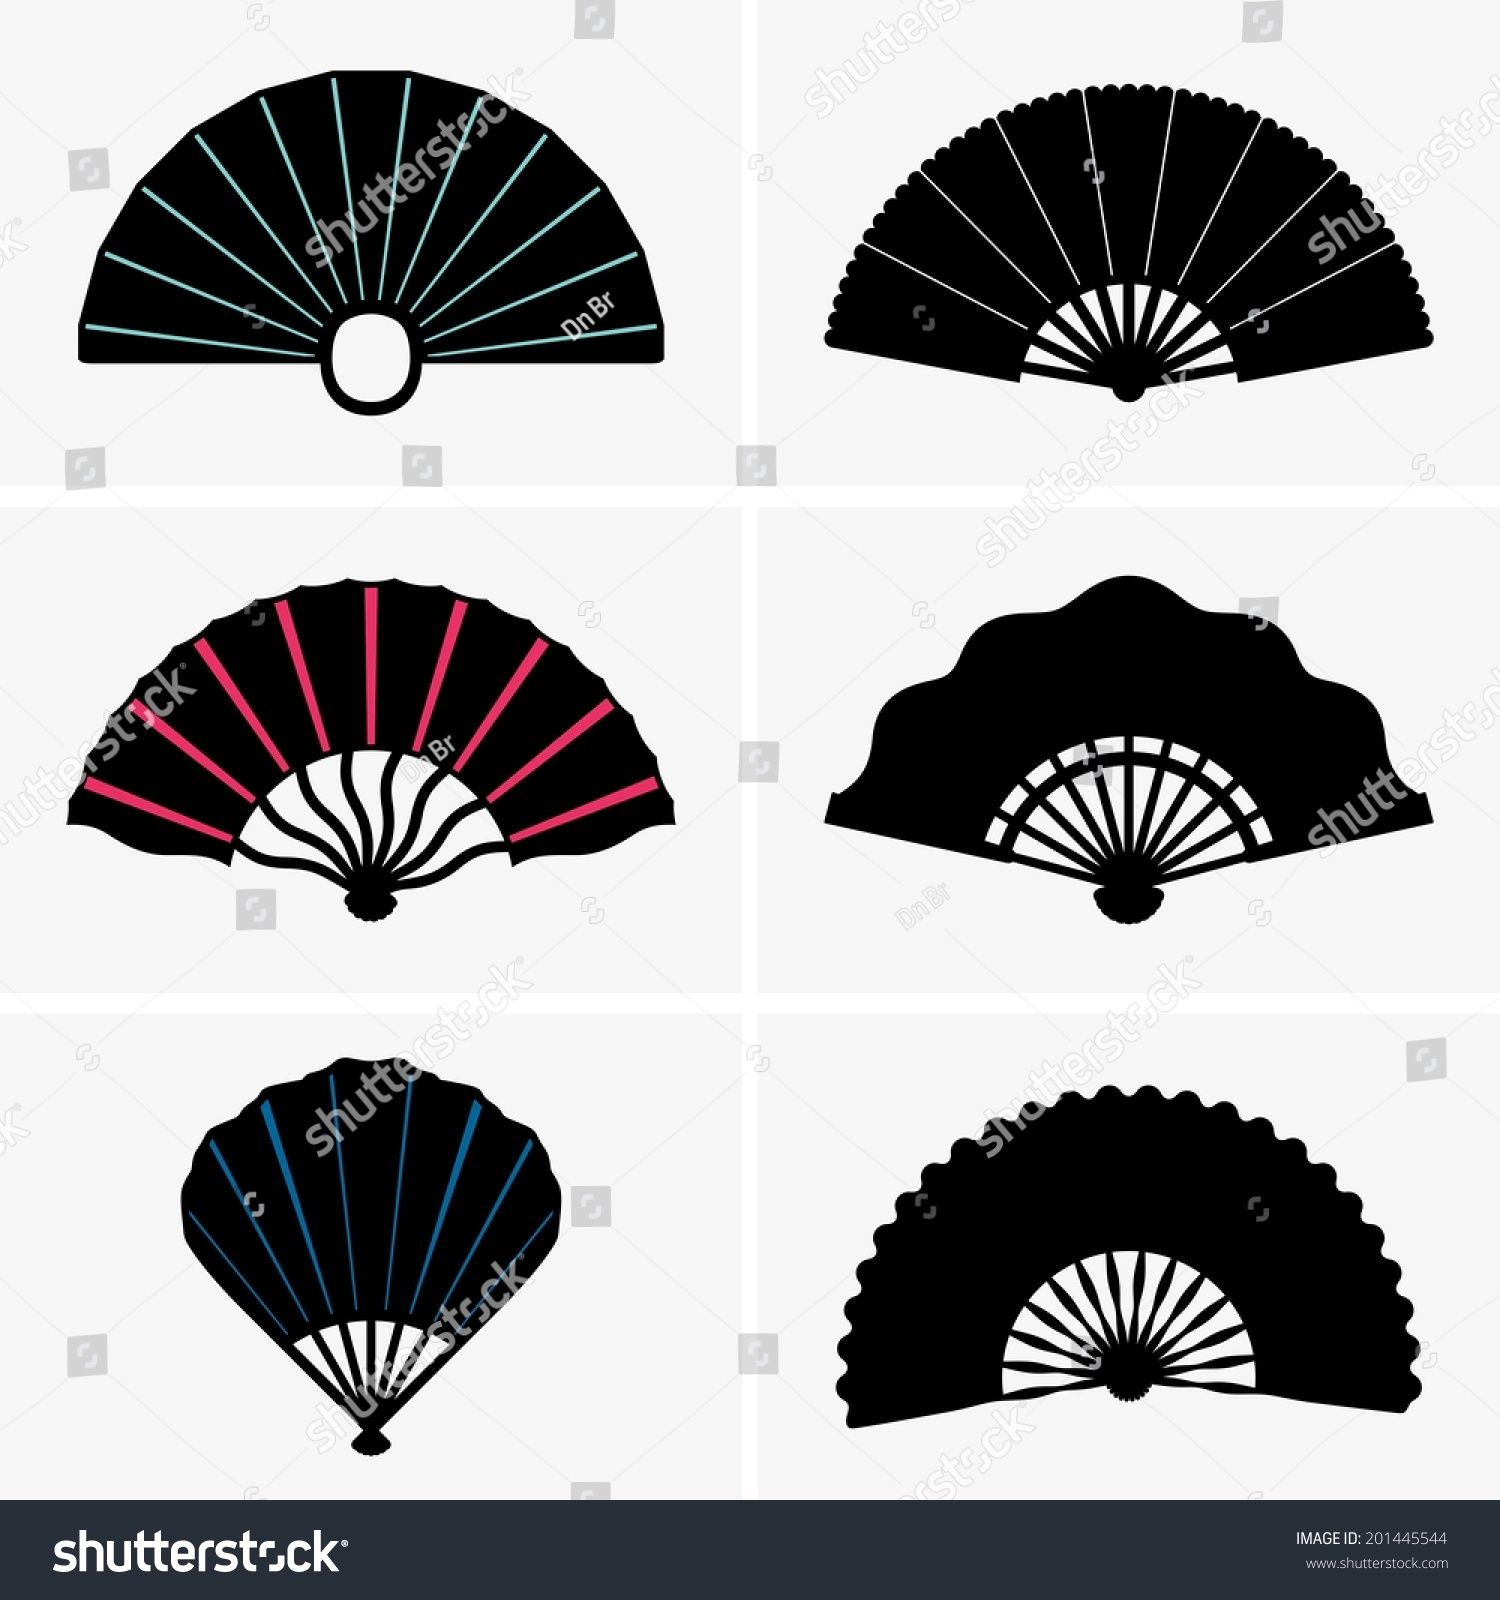 Hand Fans Hand Fan Clipart Black And White Posters Art Prints